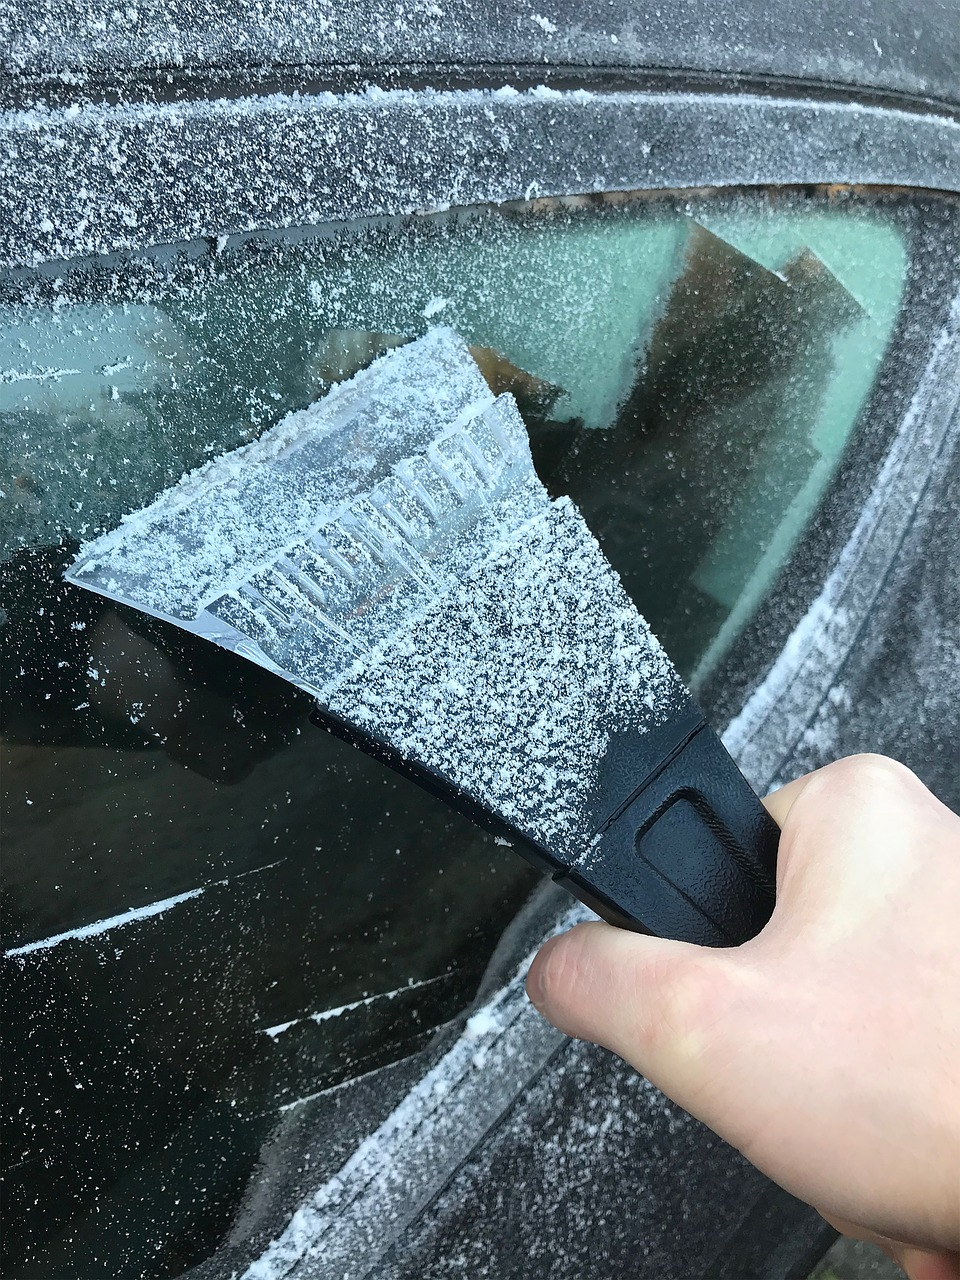 9. Keep a frost scraper and de-icer in car -